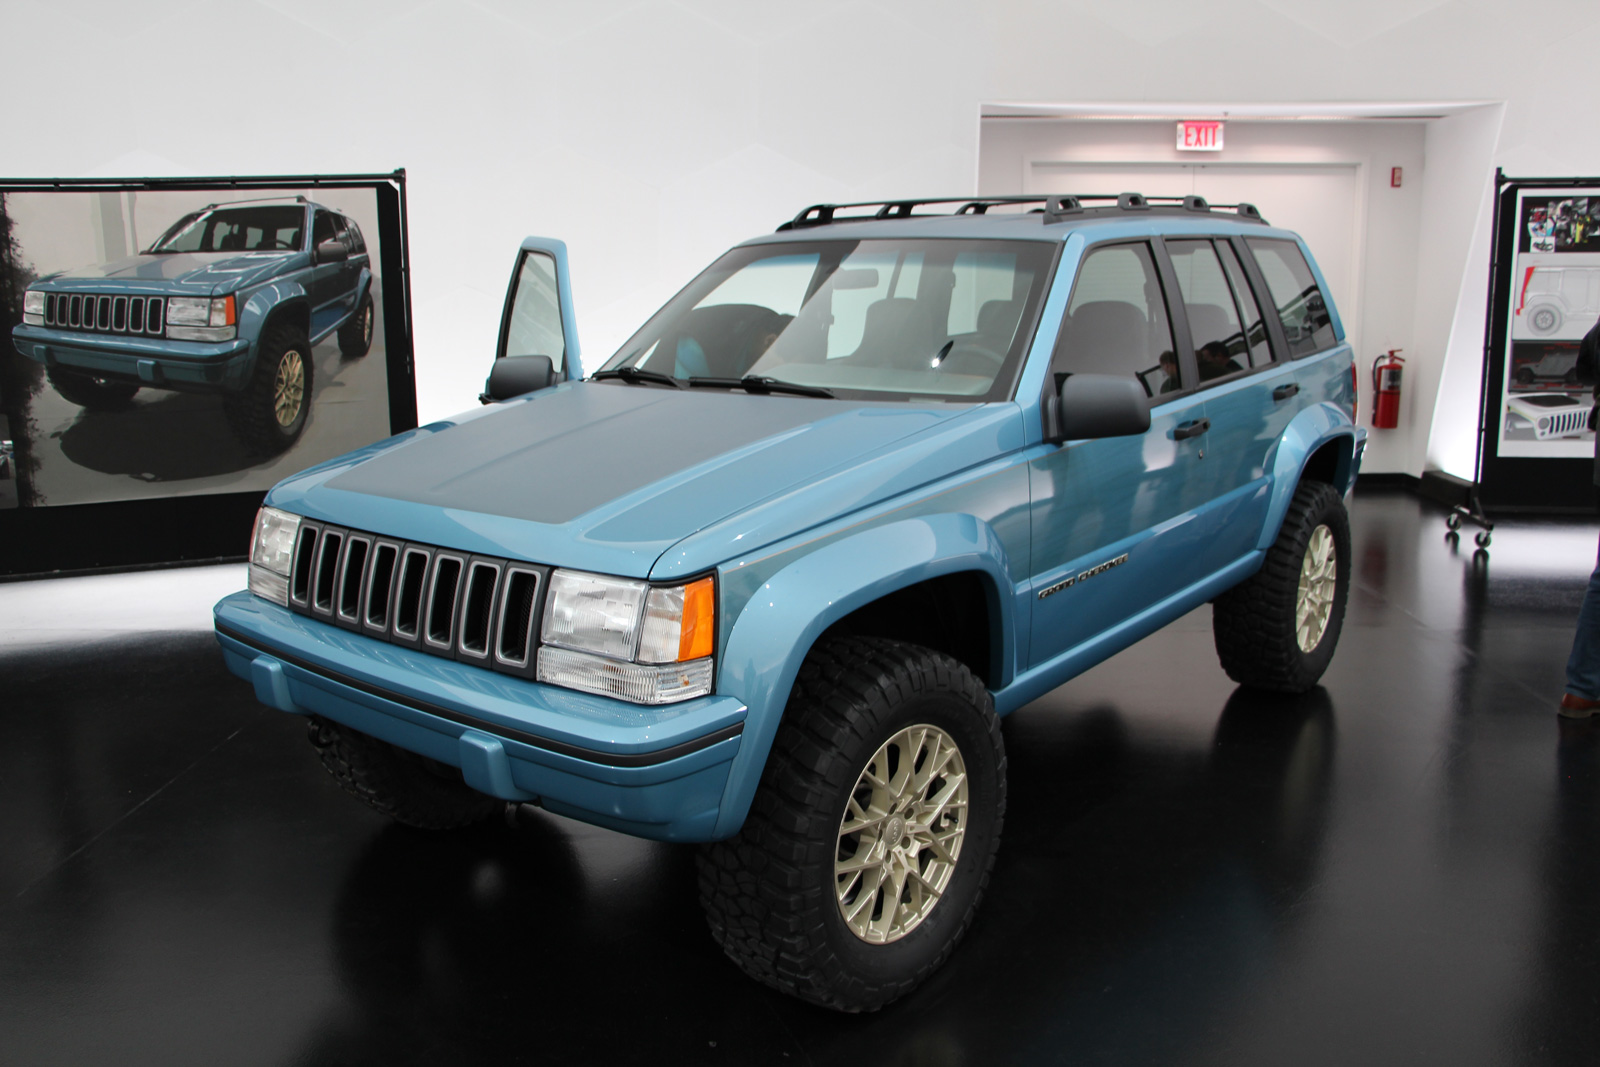 2017 Moab Easter Jeep Safari Concepts So Much Want